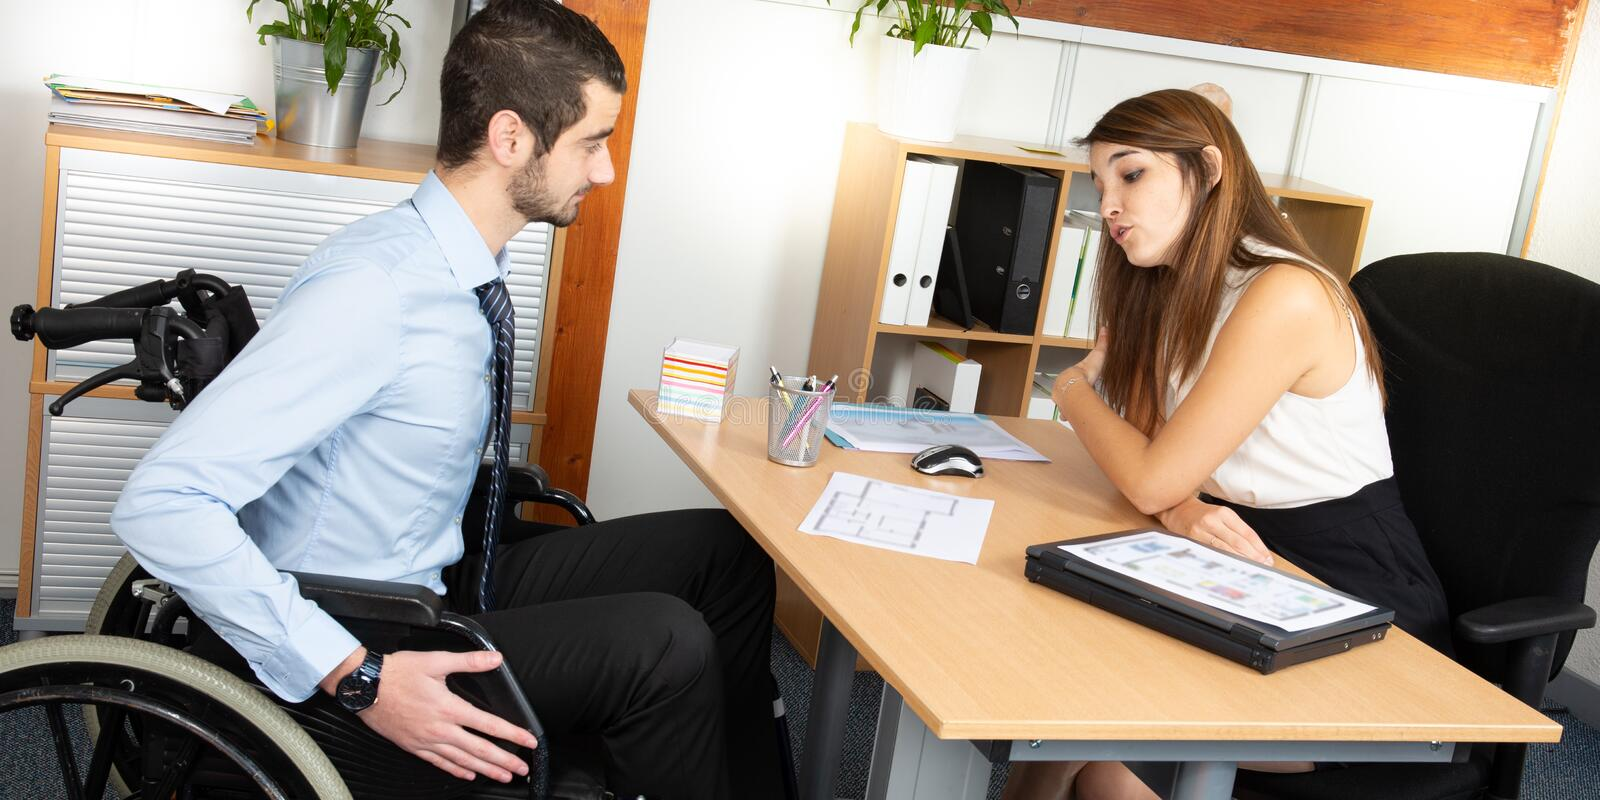 Man Sitting In Wheelchair Working In Modern Office having discussion with female colleague royalty free stock photo